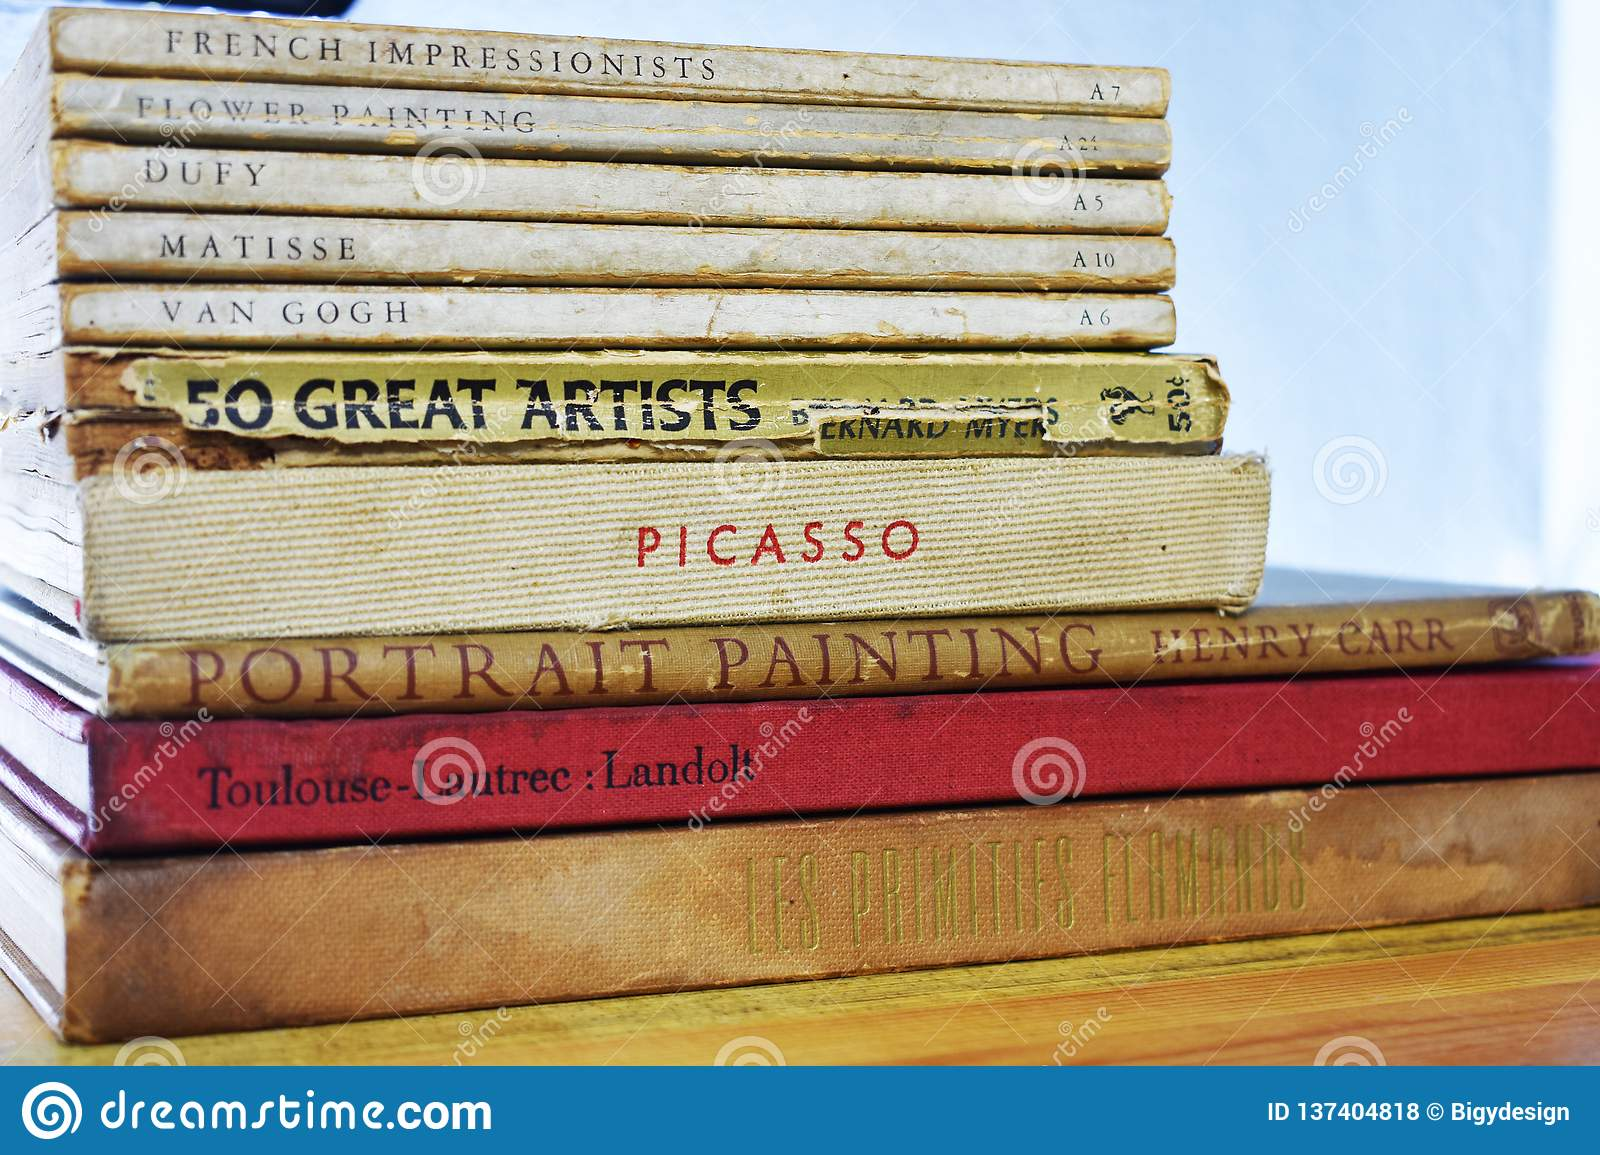 Pintor idoso Books - Dufy, Matisse, Van Gogh Picasso